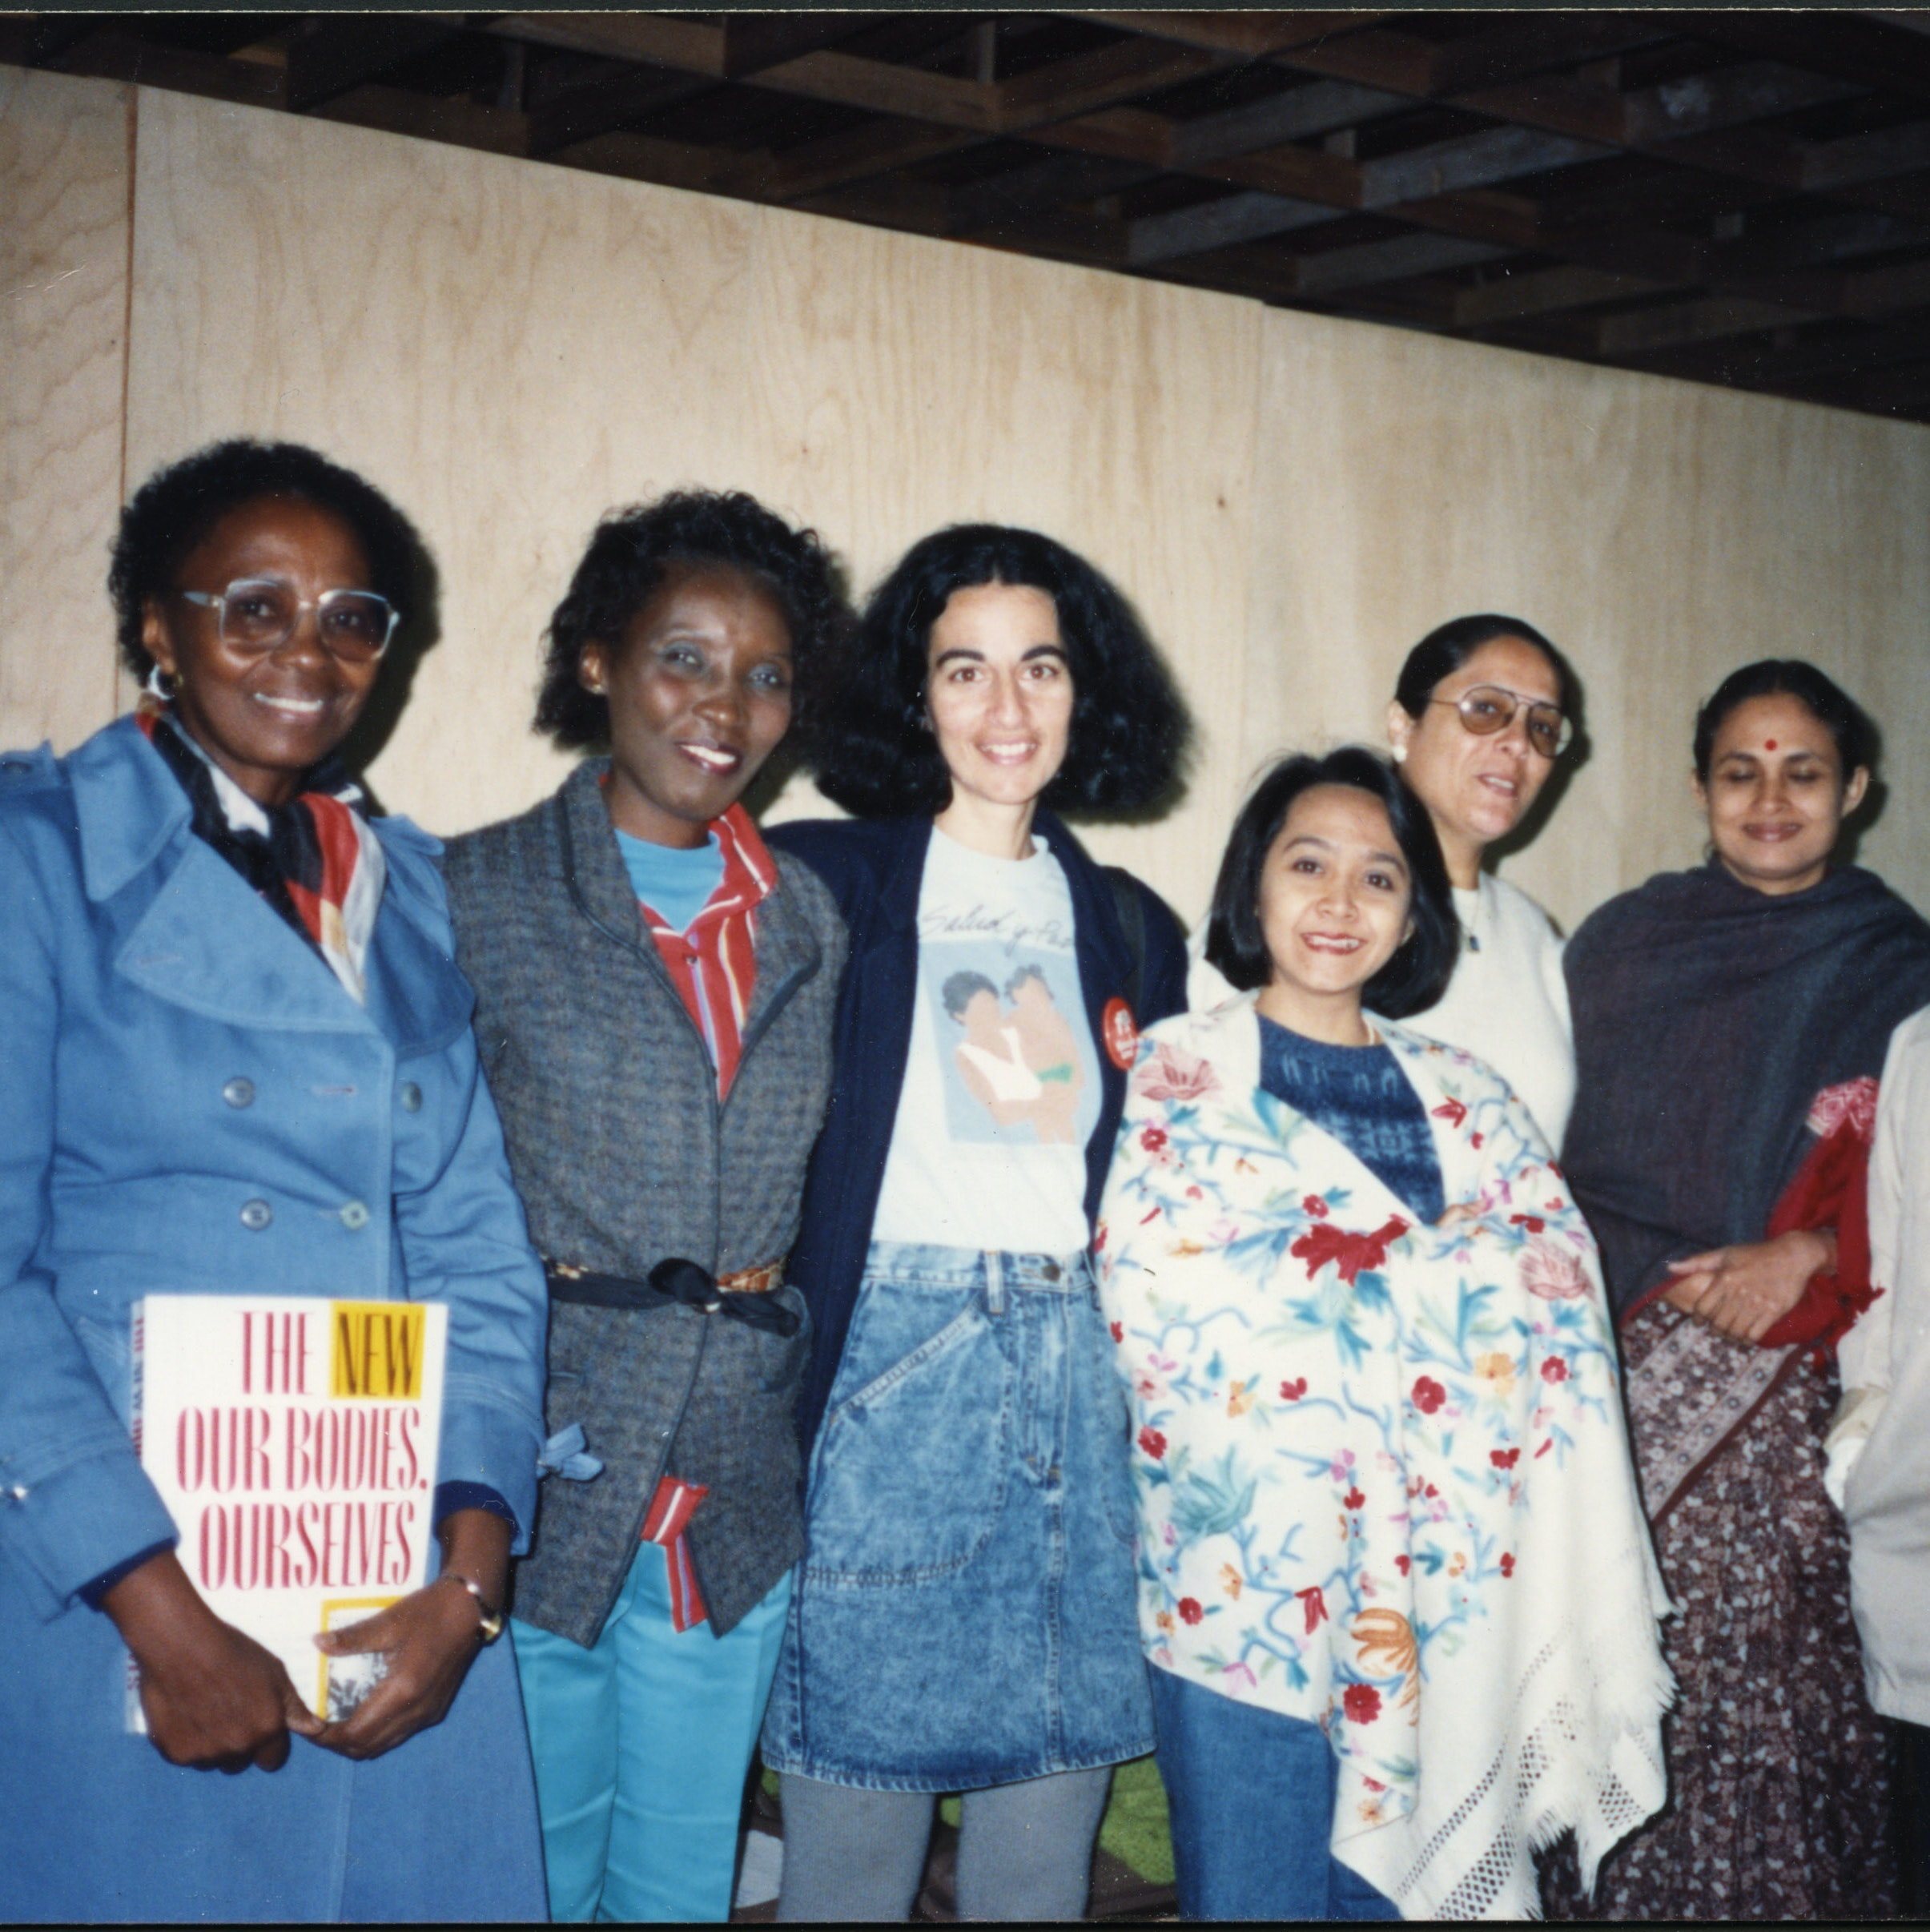 Group of women at International Women's Health Coalition (IWHC)/World Health Organization meeting, holding a copy of The New Our Bodies, Ourselves